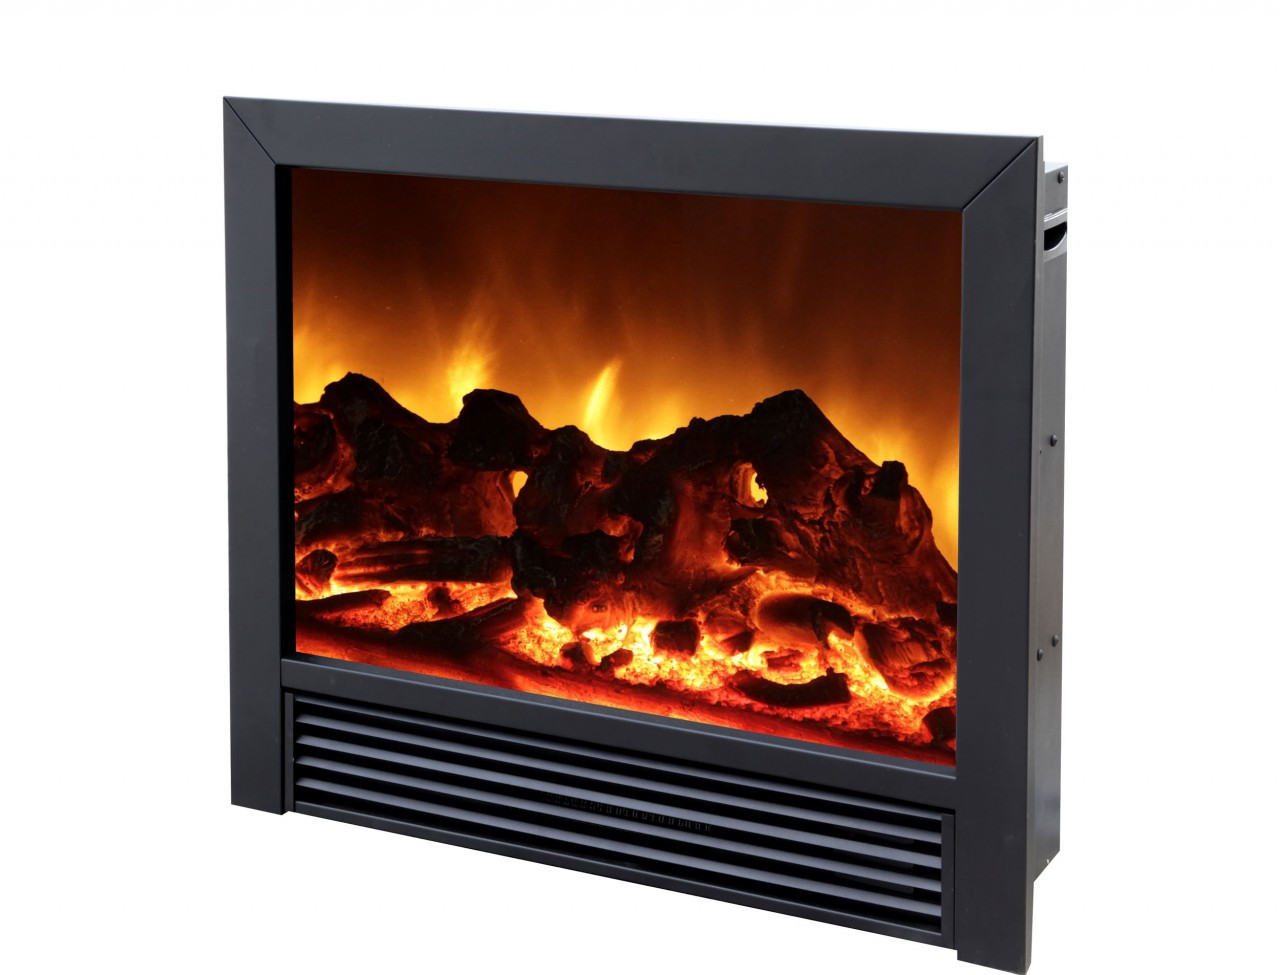 Ordinary Infrared Heater Vs Electric Fireplace Part - 7: ... Image Result For Infrared Heater Vs Electric Fireplace ...